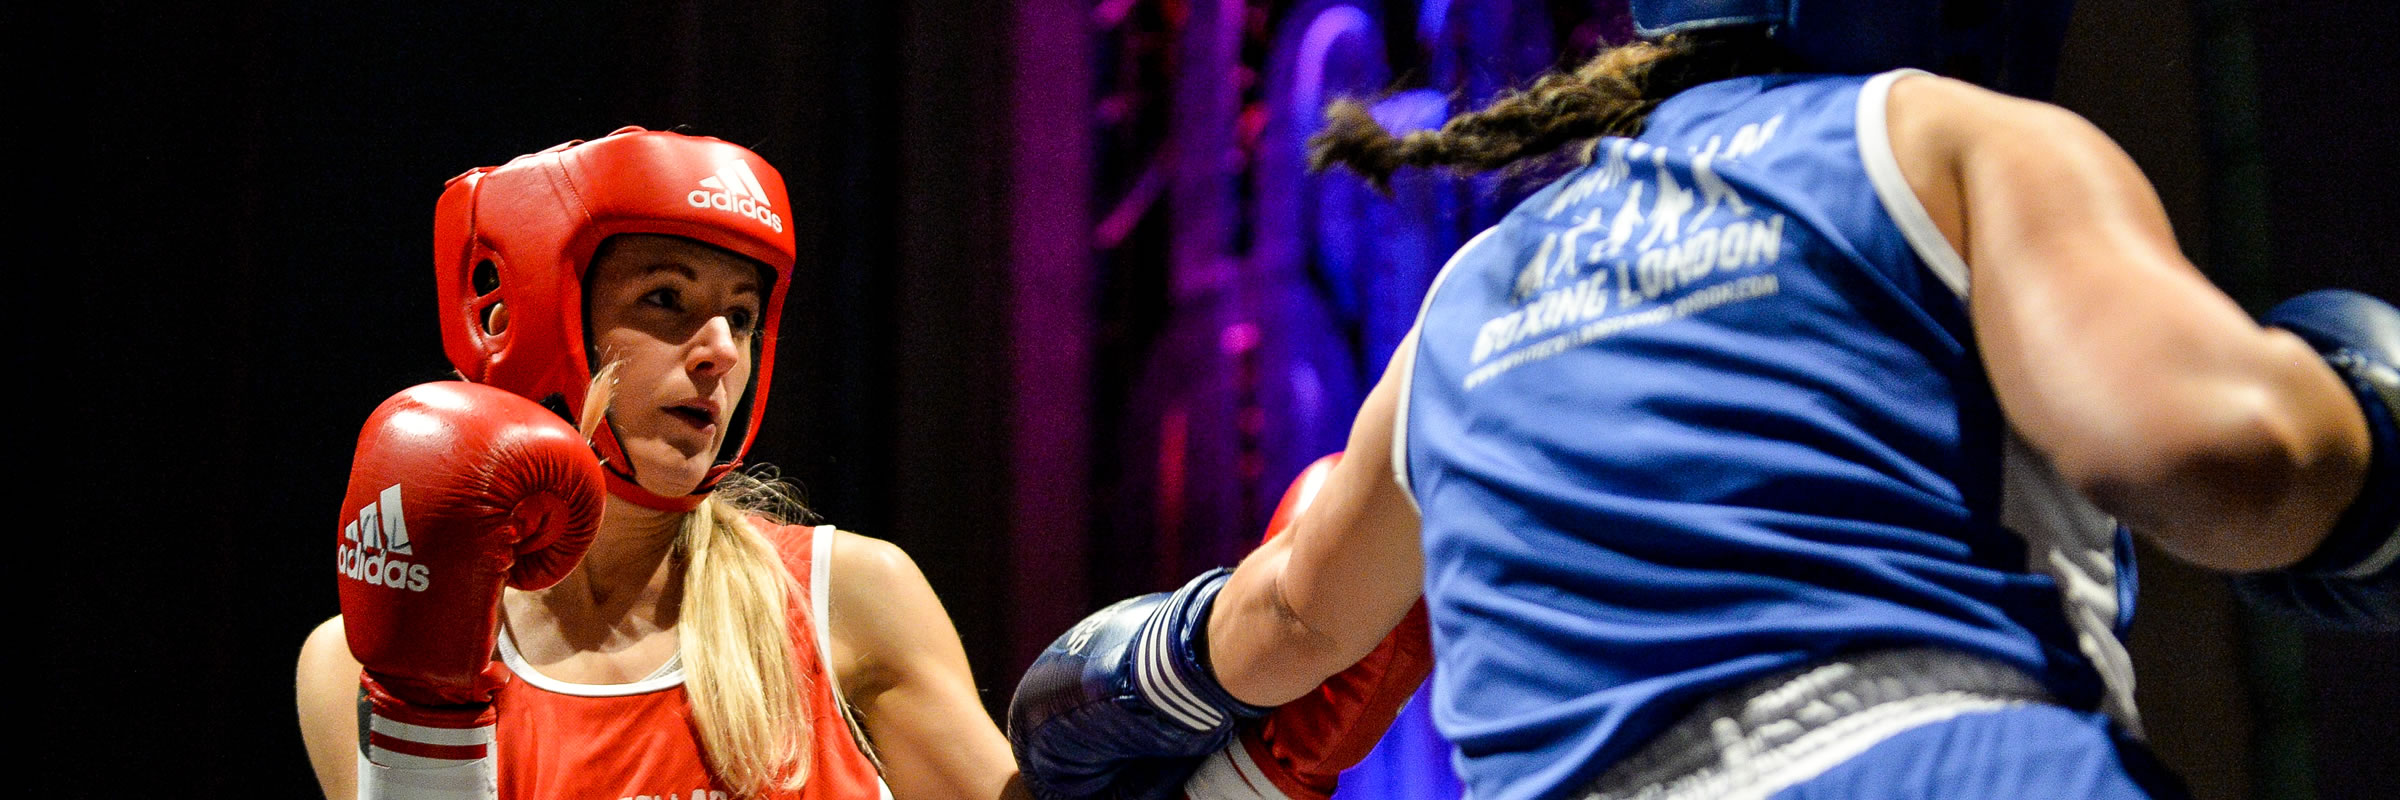 Why Us - White Collar Boxing London